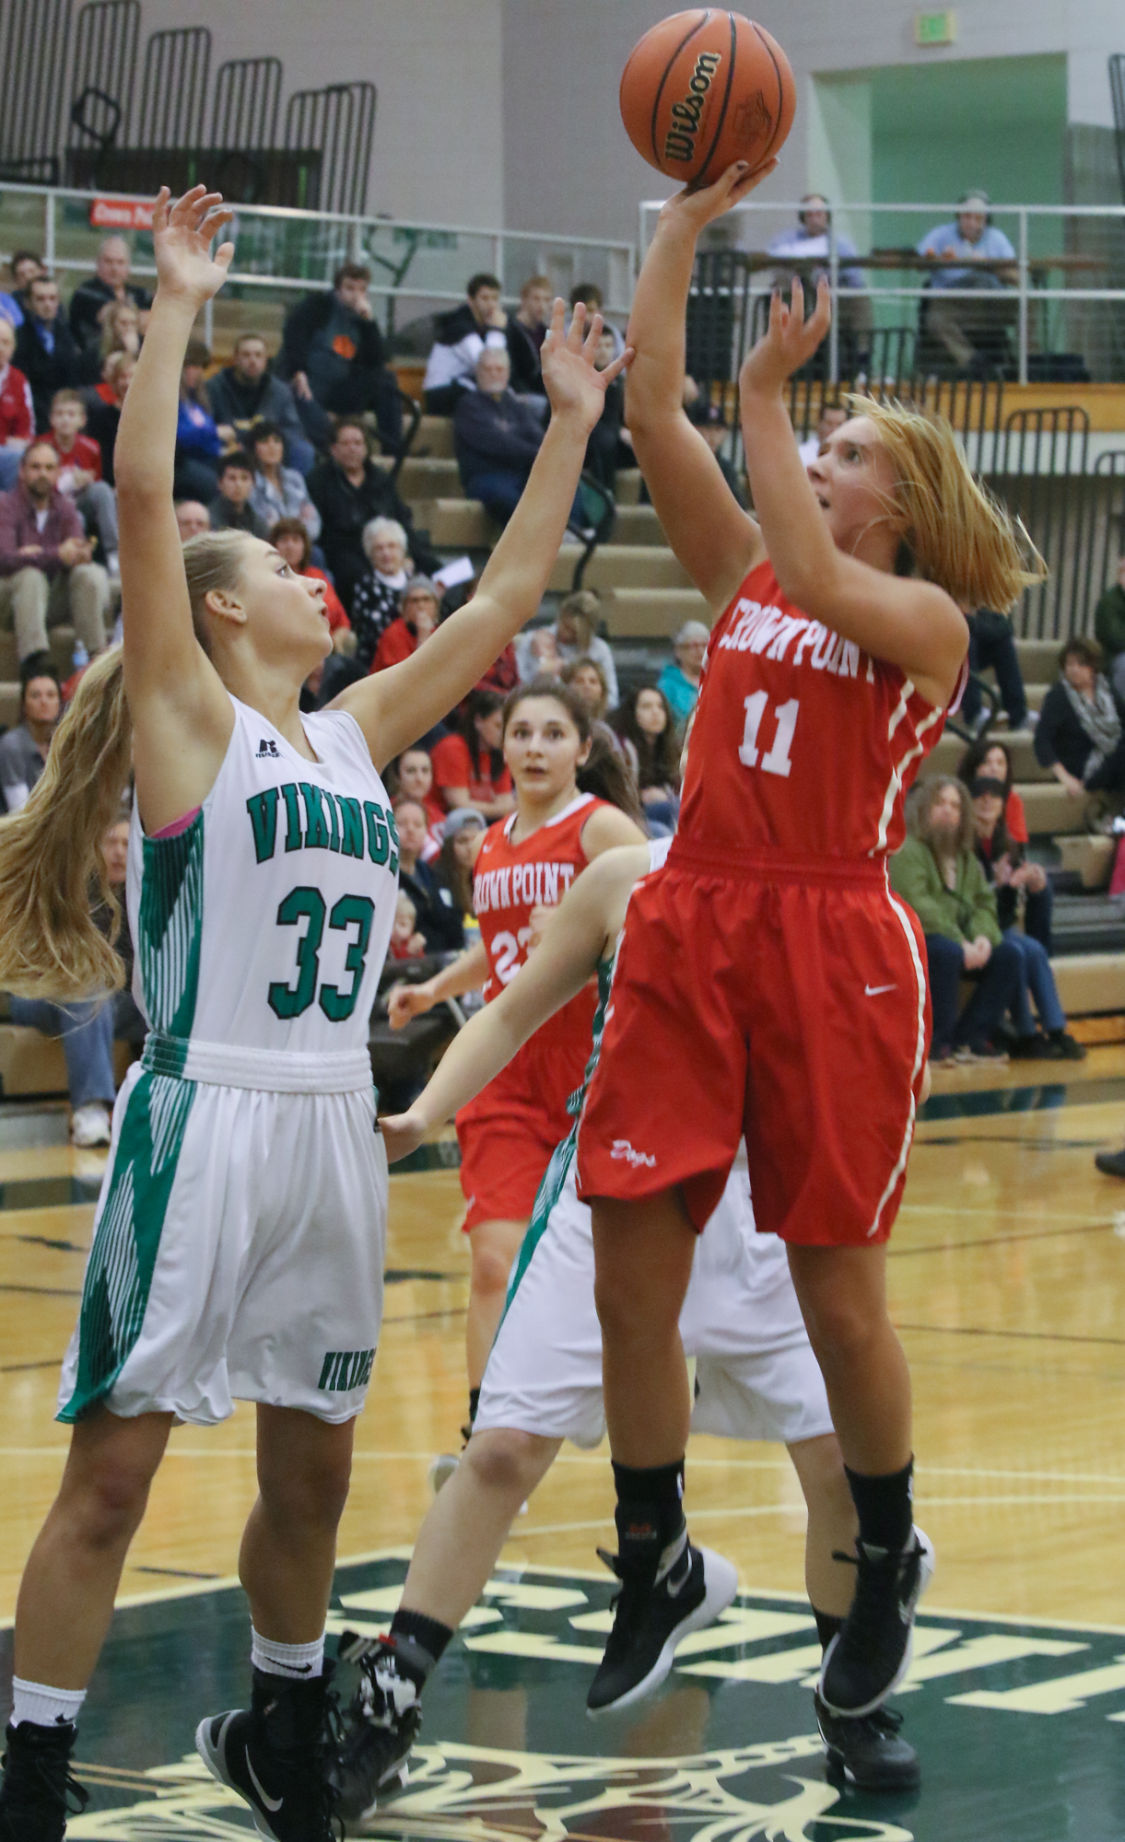 Crown Point's Hannah Albrecht commits to IPFW after St. Joe's closes